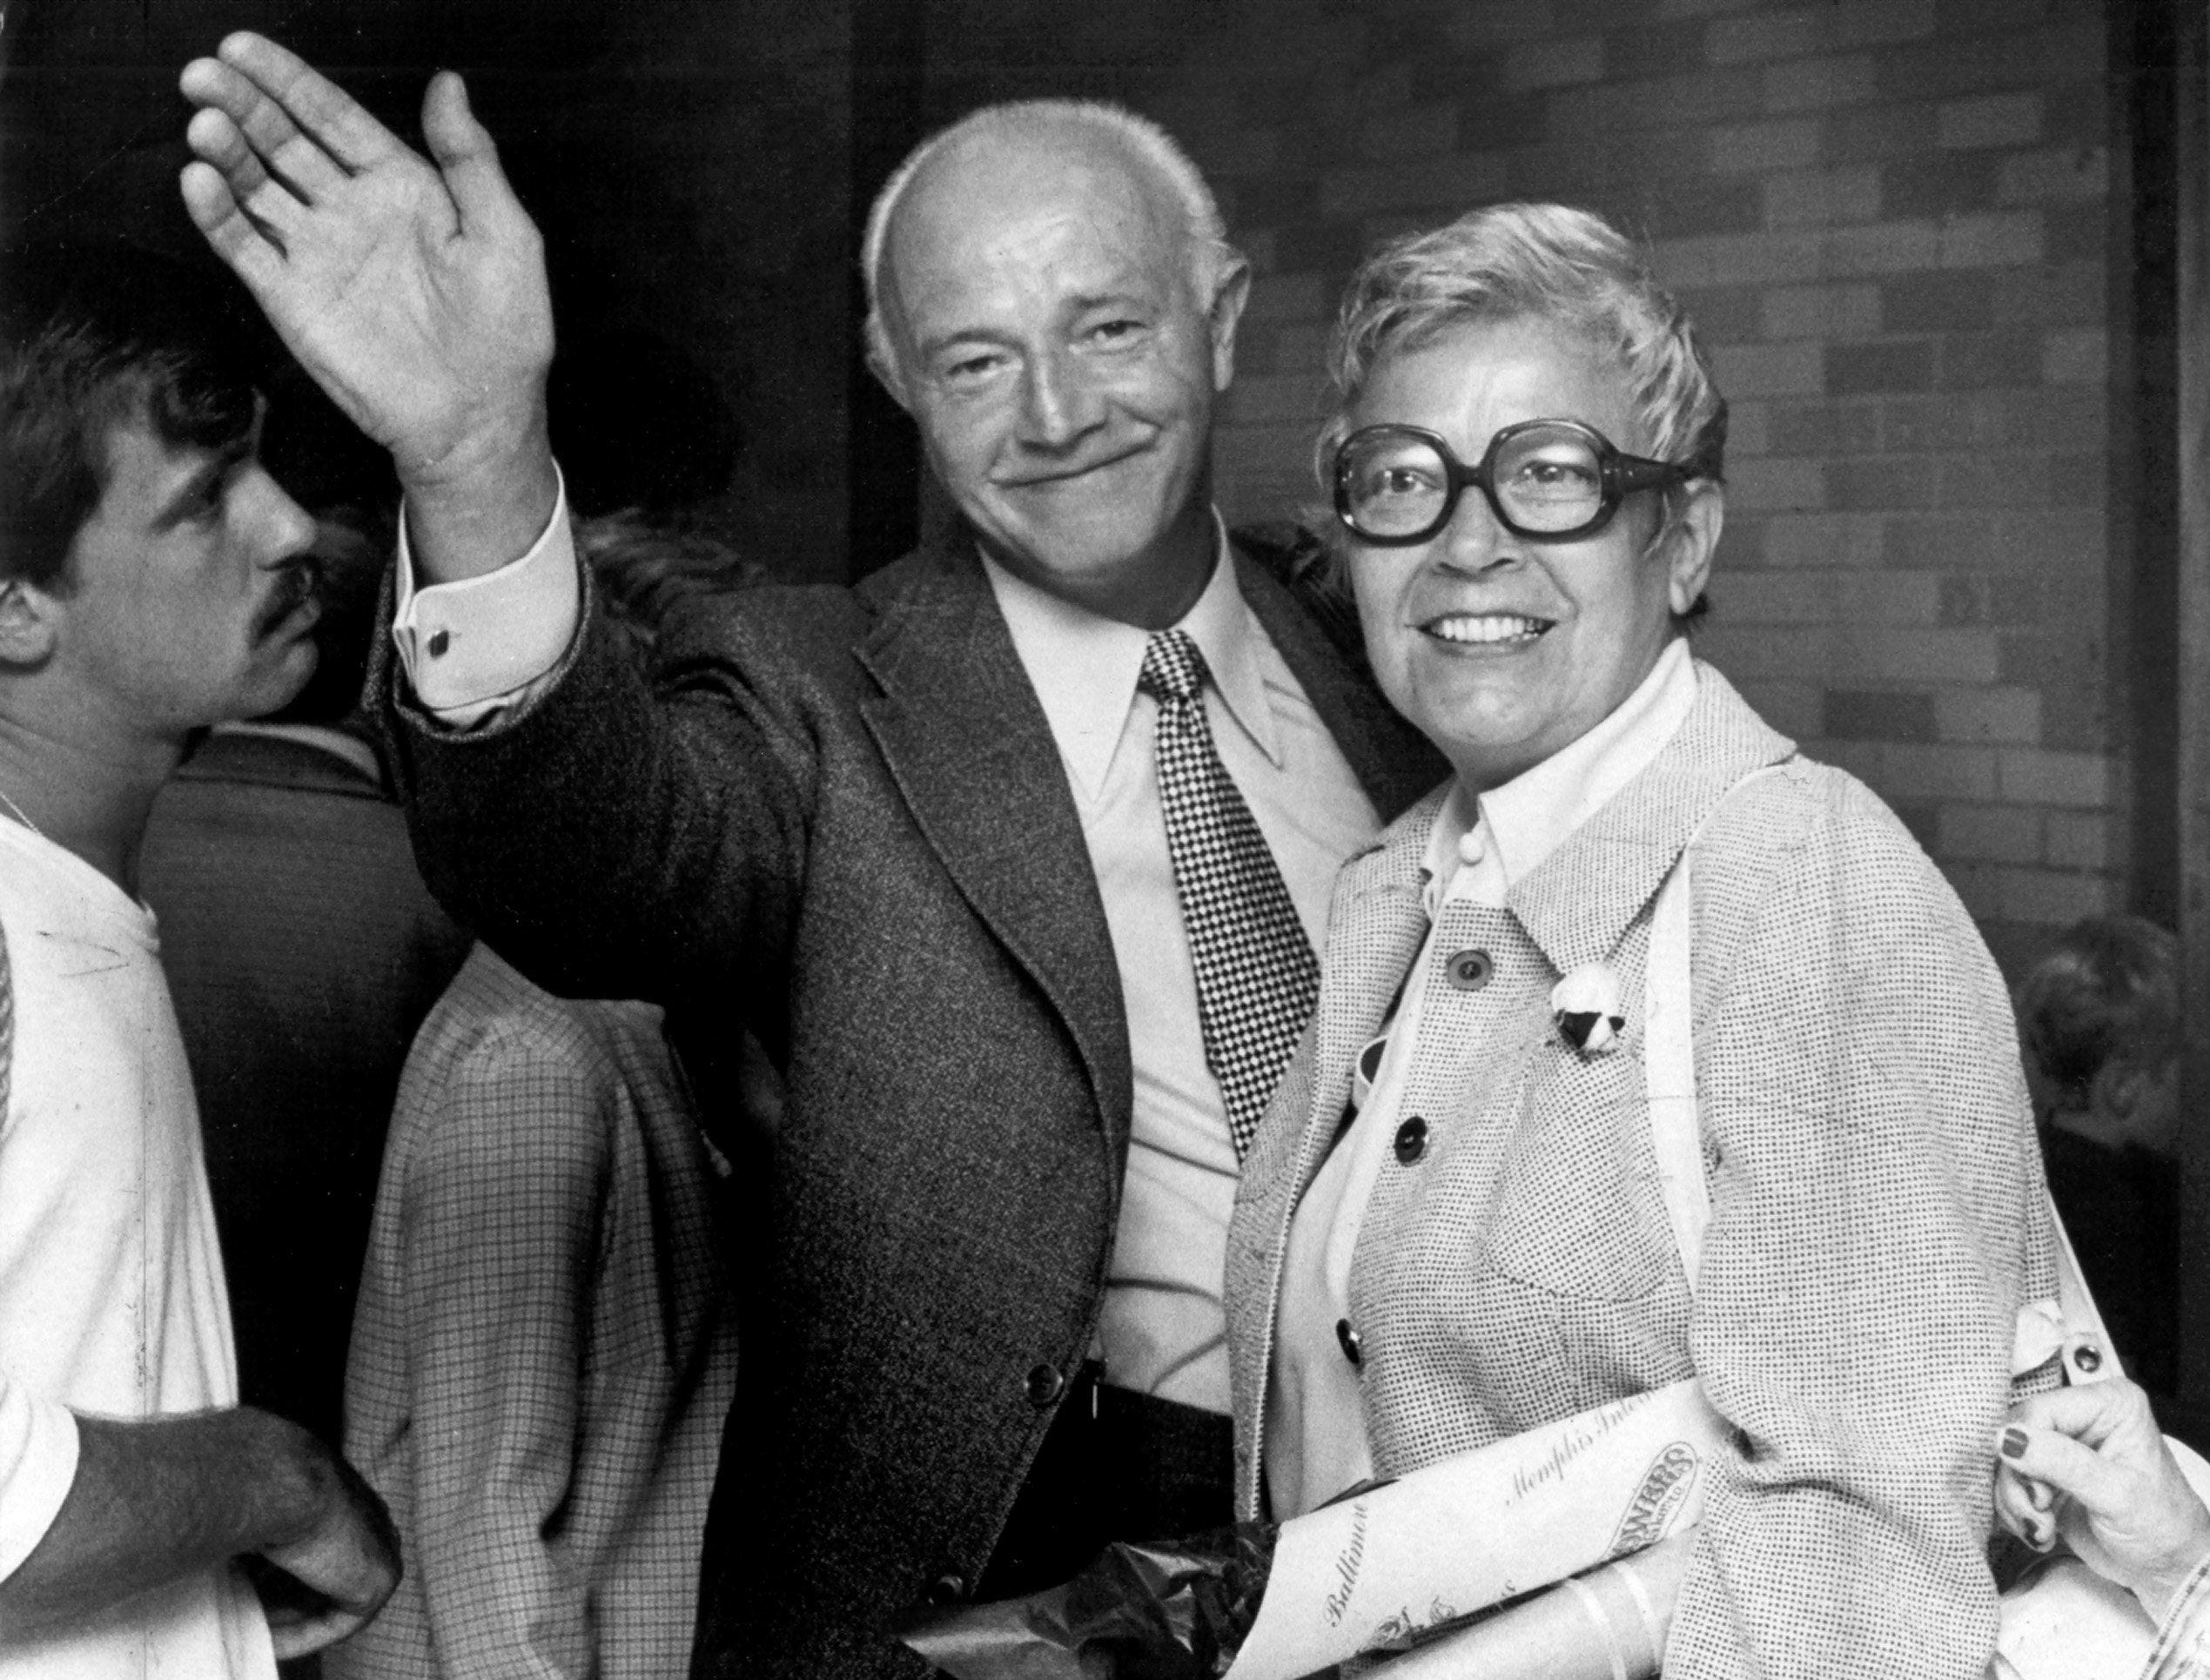 Edwin Pelz waves goodbye to Memphis on 27 June 1975 after he and his wife, Elizabeth, had spent three weeks visiting the Bluff City. Pelz, who had been a German prisoner of war during World War II, spent his time as a POW working at the Memphis Army Depot from 1944 until 1946. His return trip to Memphis was made possible by local donations after The Commercial Appeal ran a series of articles in which Pelz told of his affection for Memphis and the people of the Mid-South since his days as a POW.